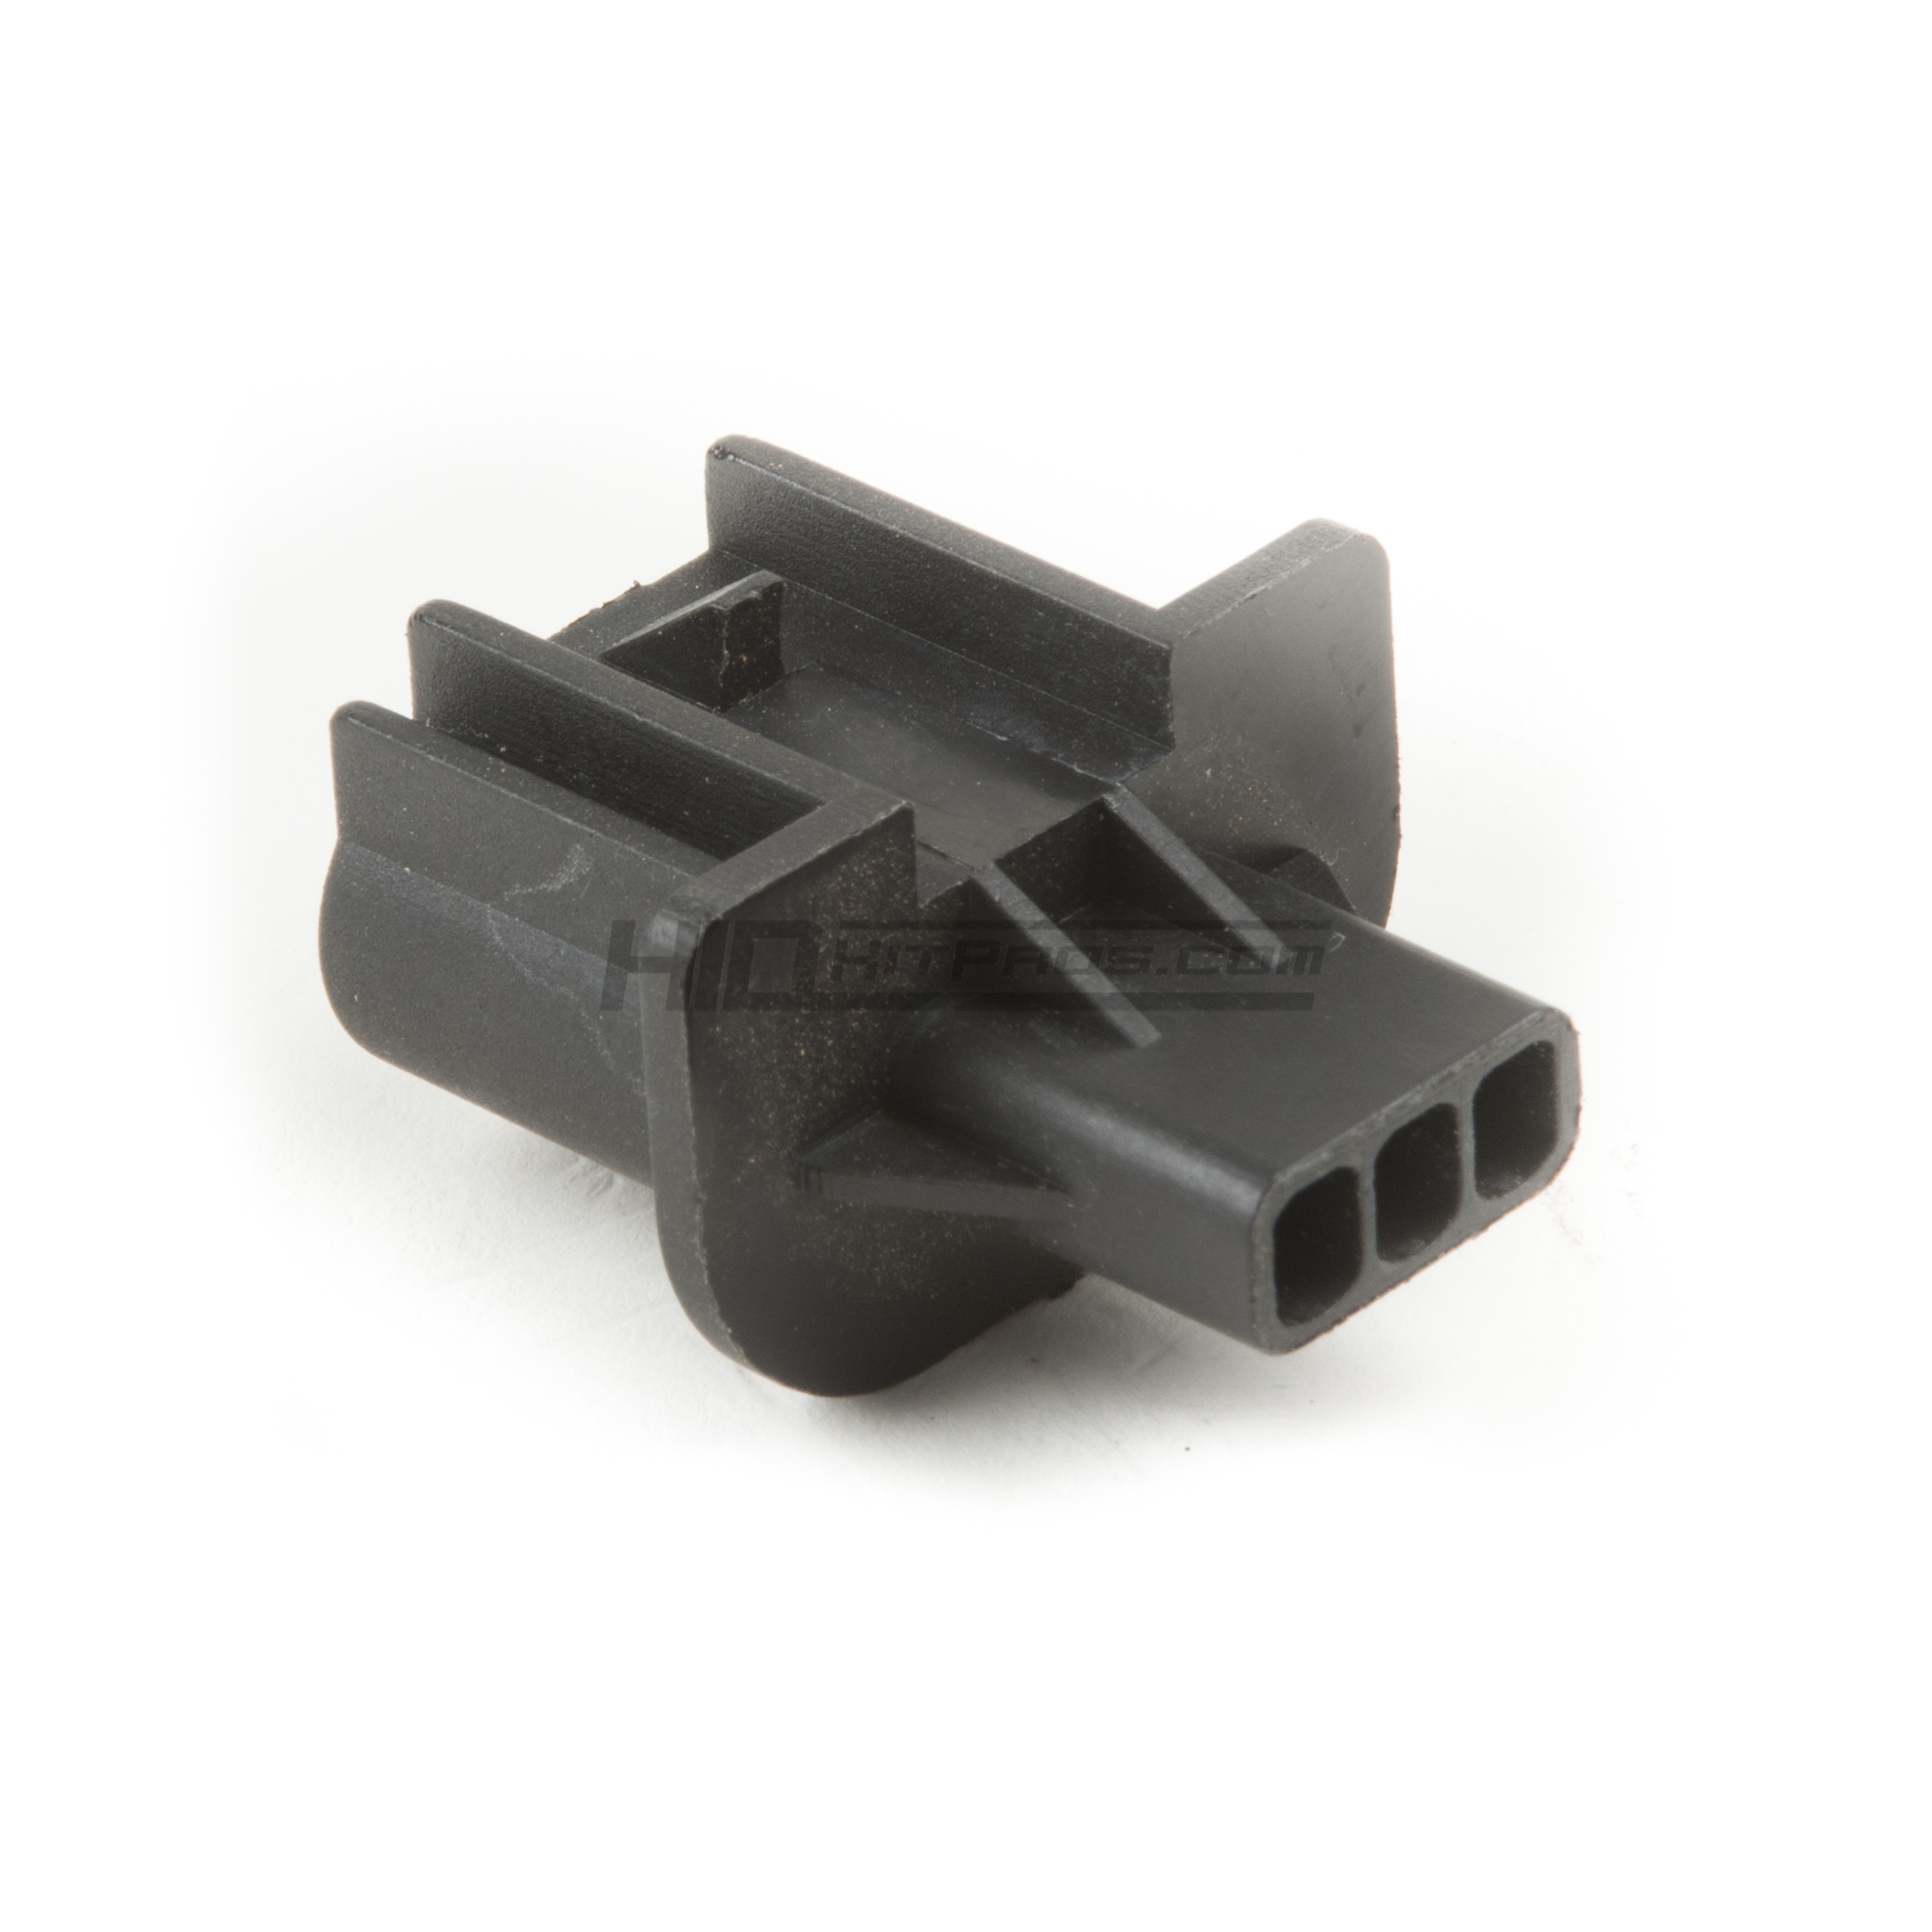 H13 9008 HID Pigtail Male Socket Adapter